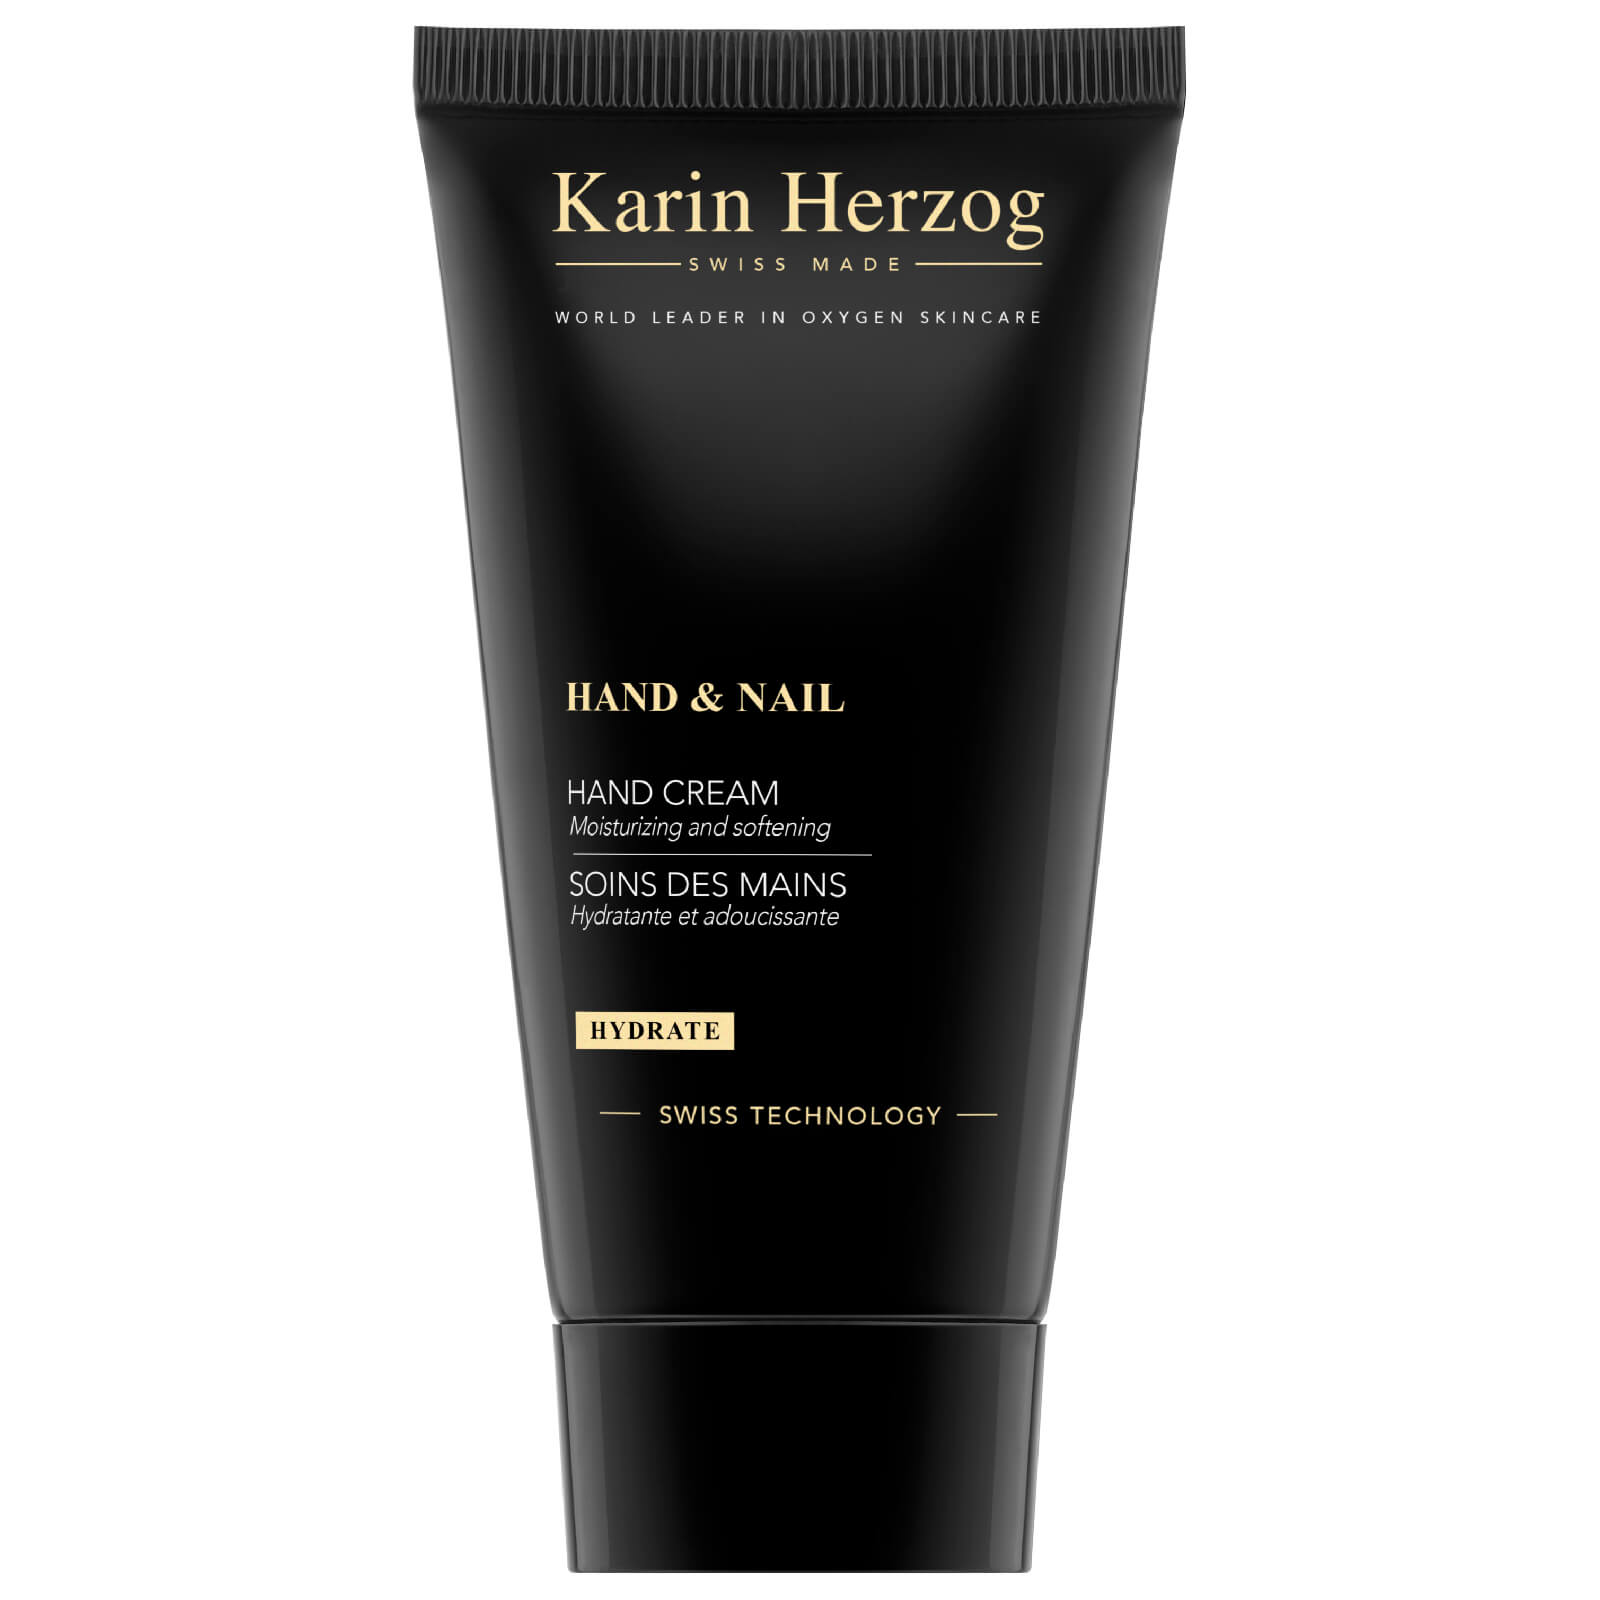 Image result for KARIN HERZOG HANDS & NAIL HAND CREAM